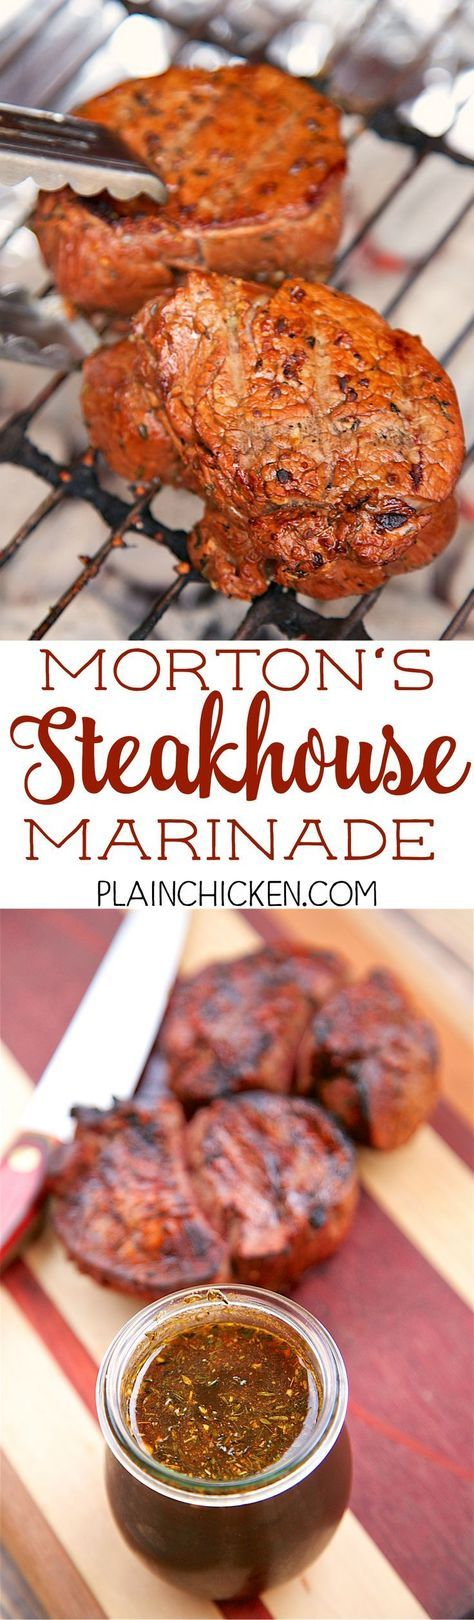 Morton's Steakhouse Marinade - recipe from the famous steakhouse. Garlic, thyme, cayenne pepper, soy sauce, Worcestershire sauce, oil, lime juice, salt and pepper. This makes THE BEST steaks EVER! I cleaned my plate, and I never do that! Seriously, the be